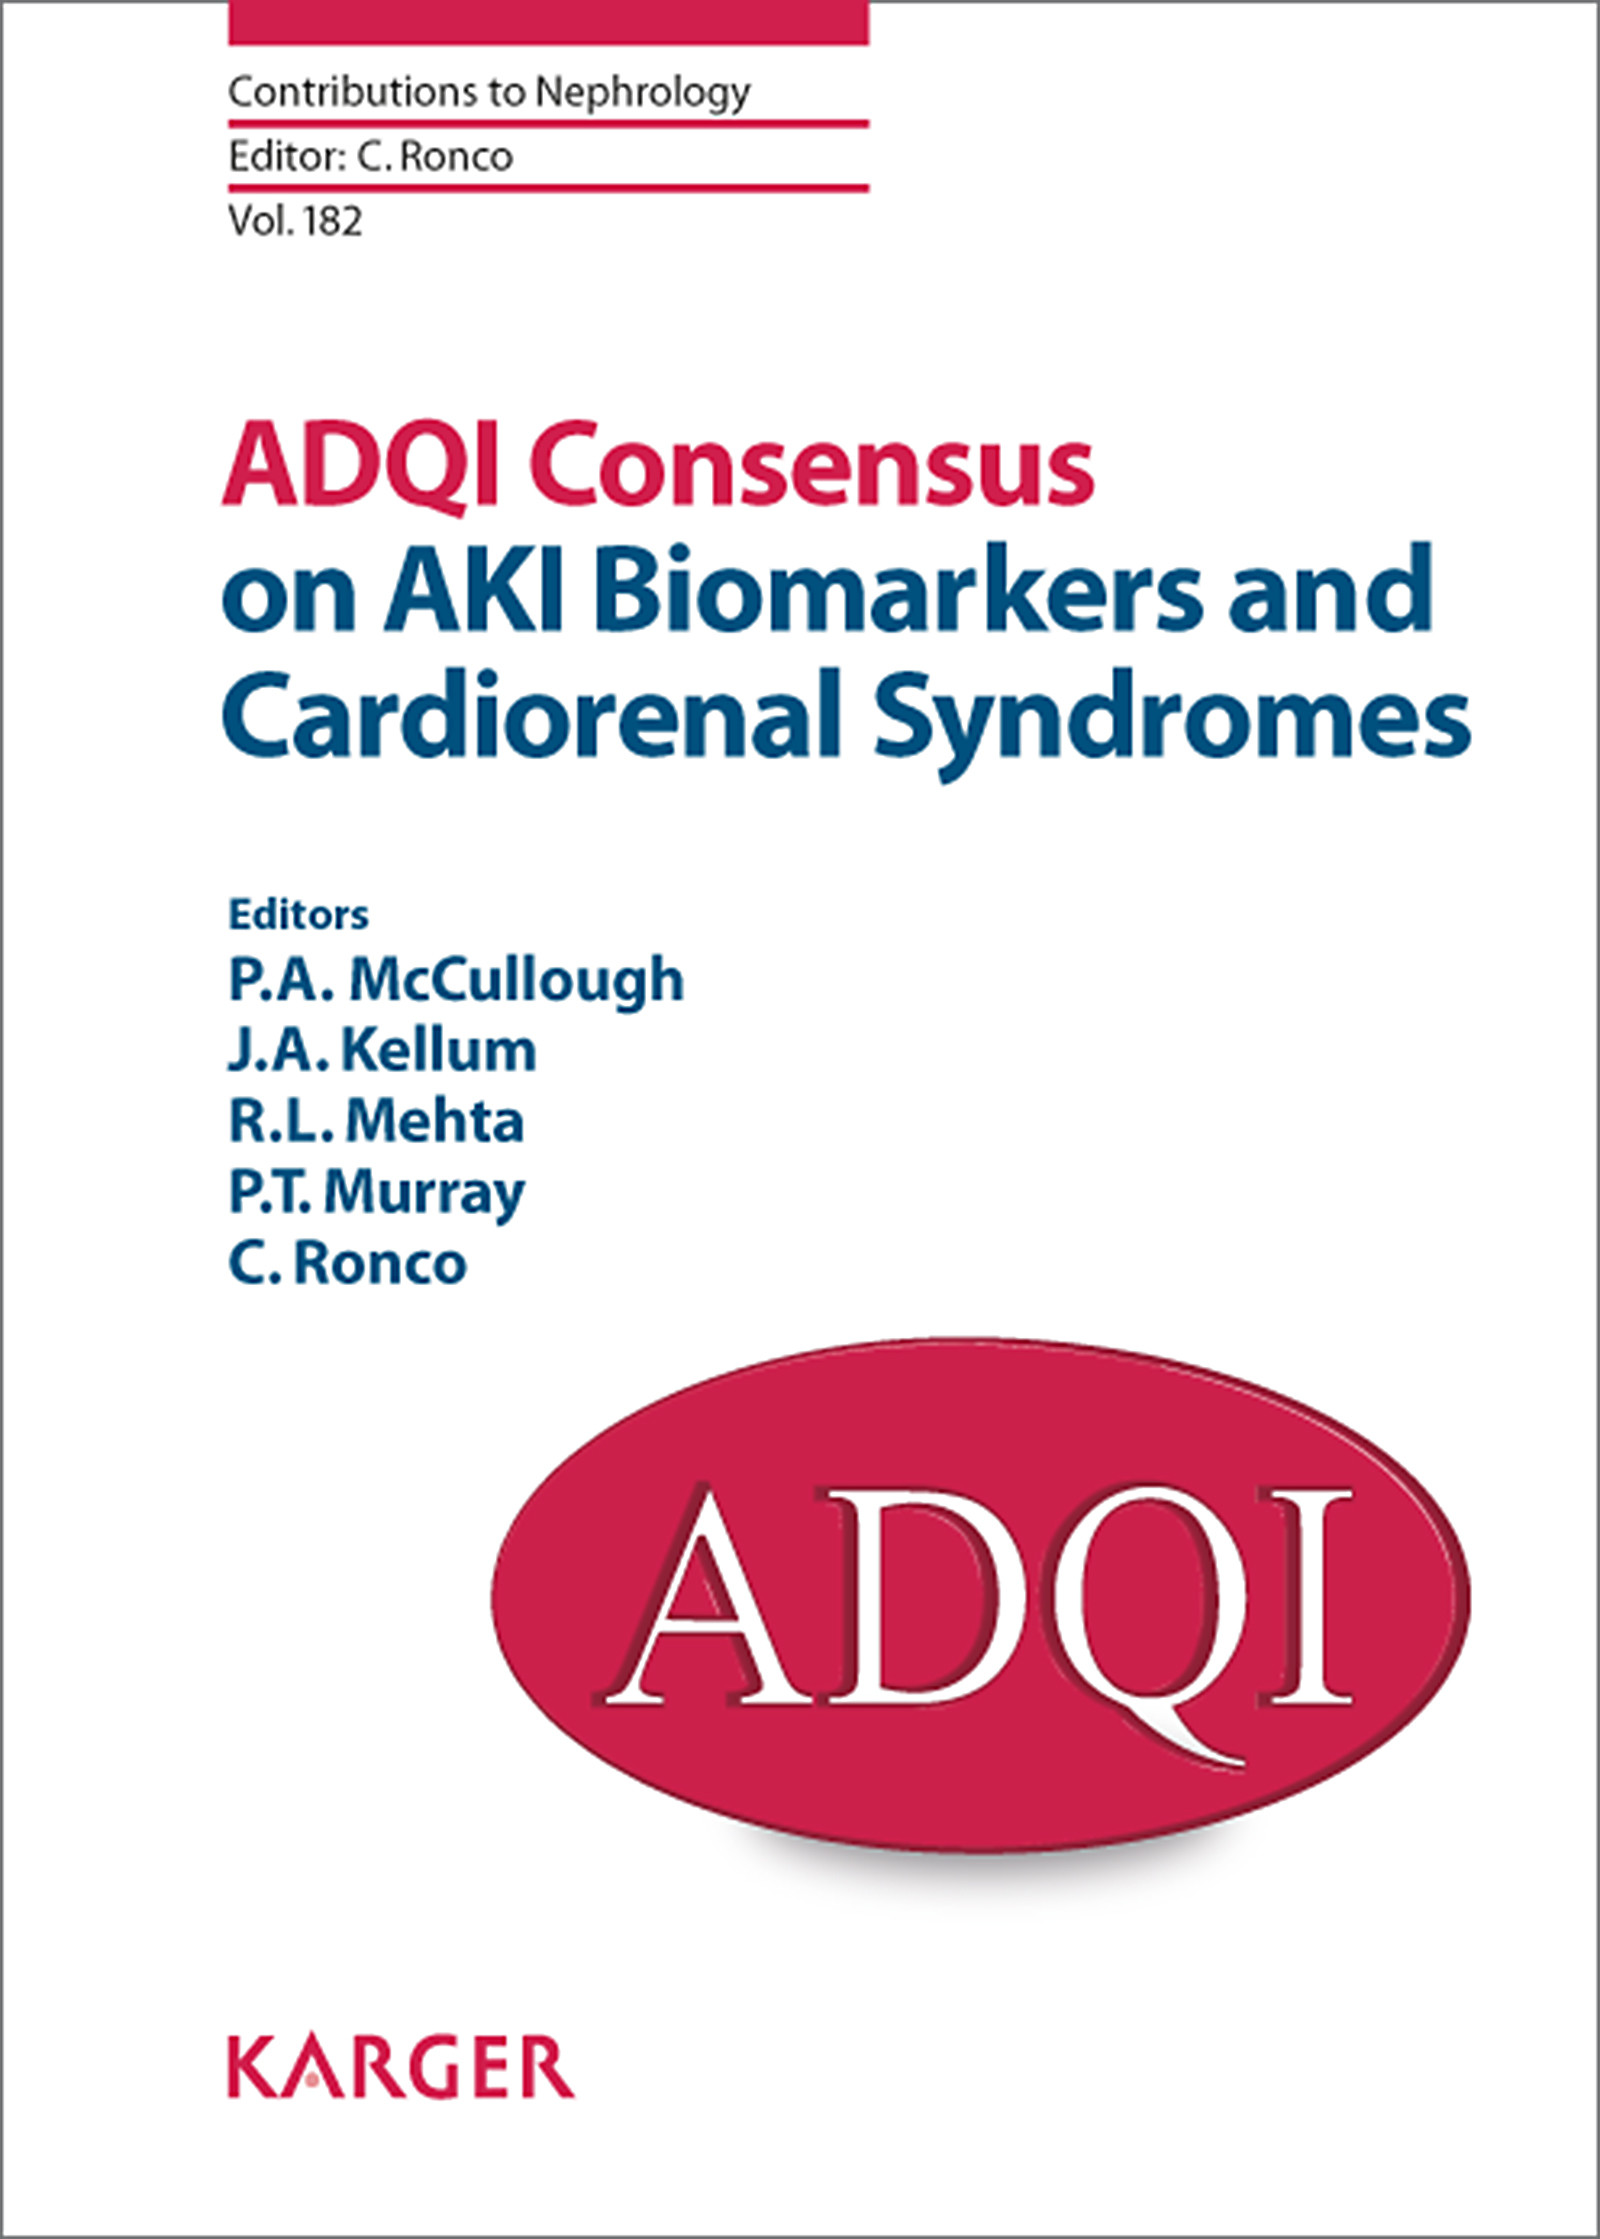 ADQI Consensus on AKI Biomarkers and Cardiorenal Syndromes